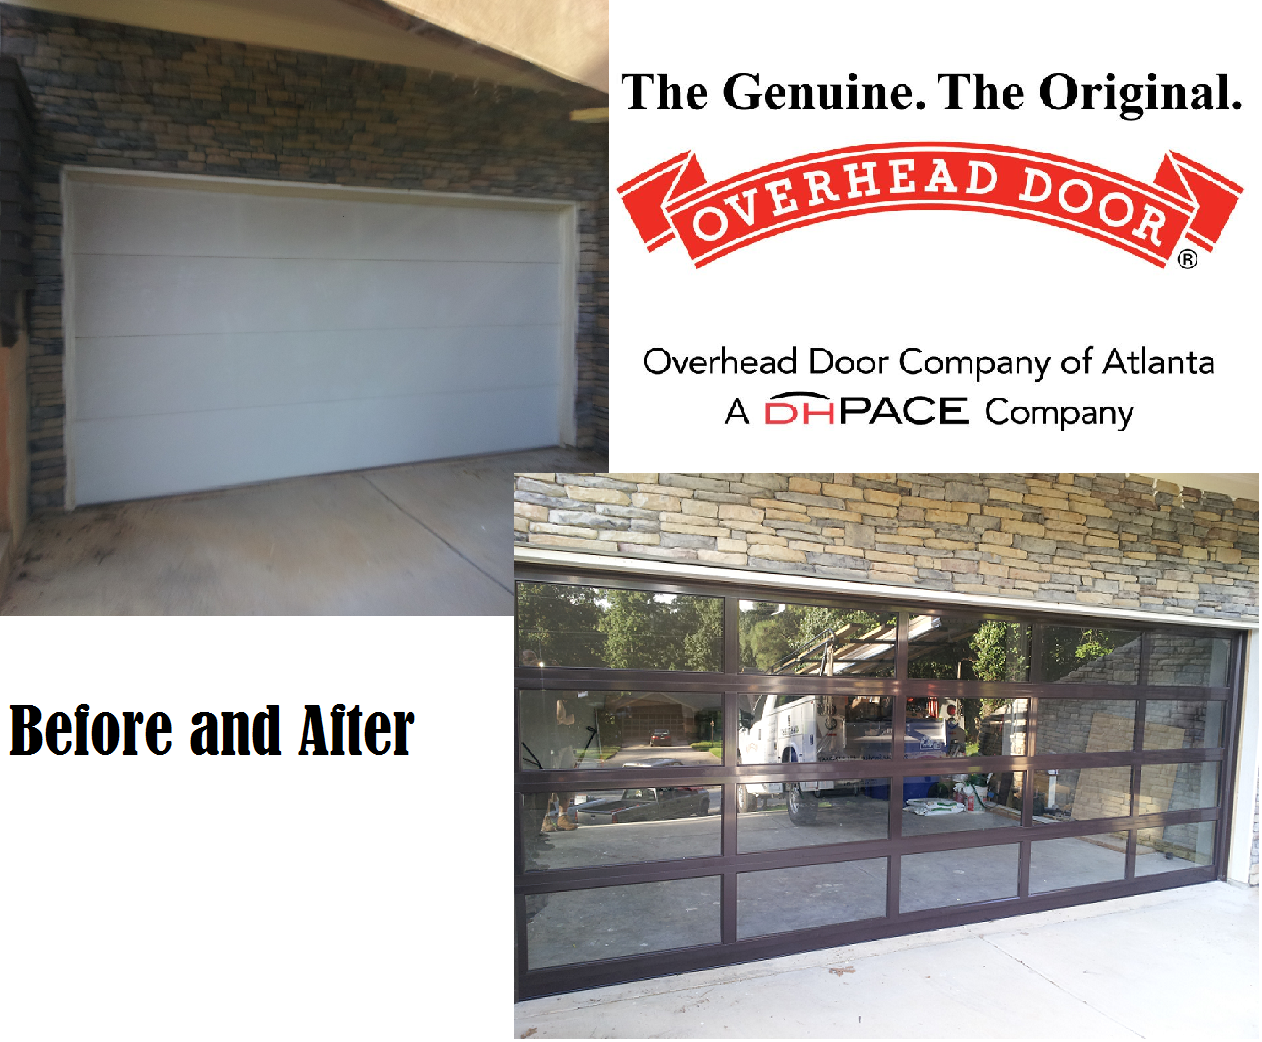 1042 #BA1A11 Overhead Door Company Of Atlanta Garage Builders & Contractors picture/photo Overhead Doors Atlanta 36591262